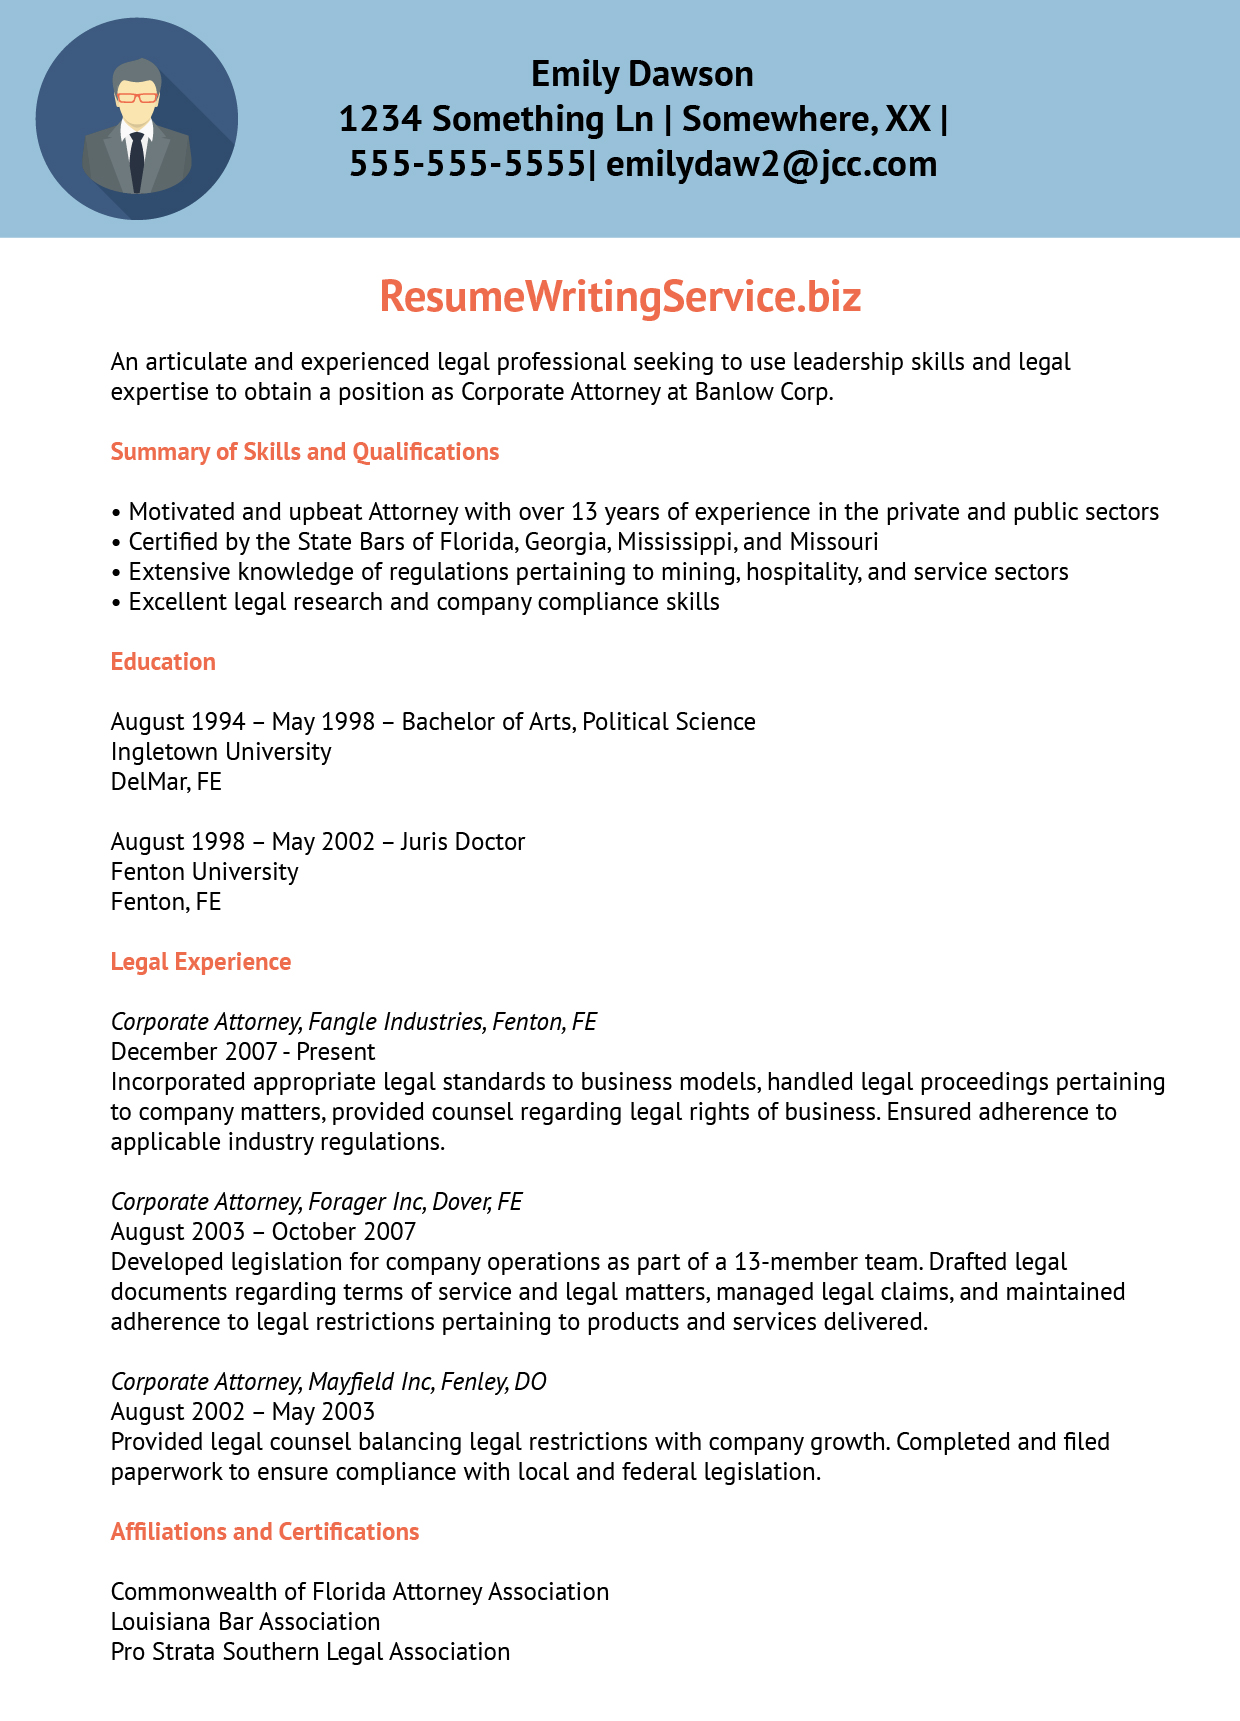 Do resume writing services help